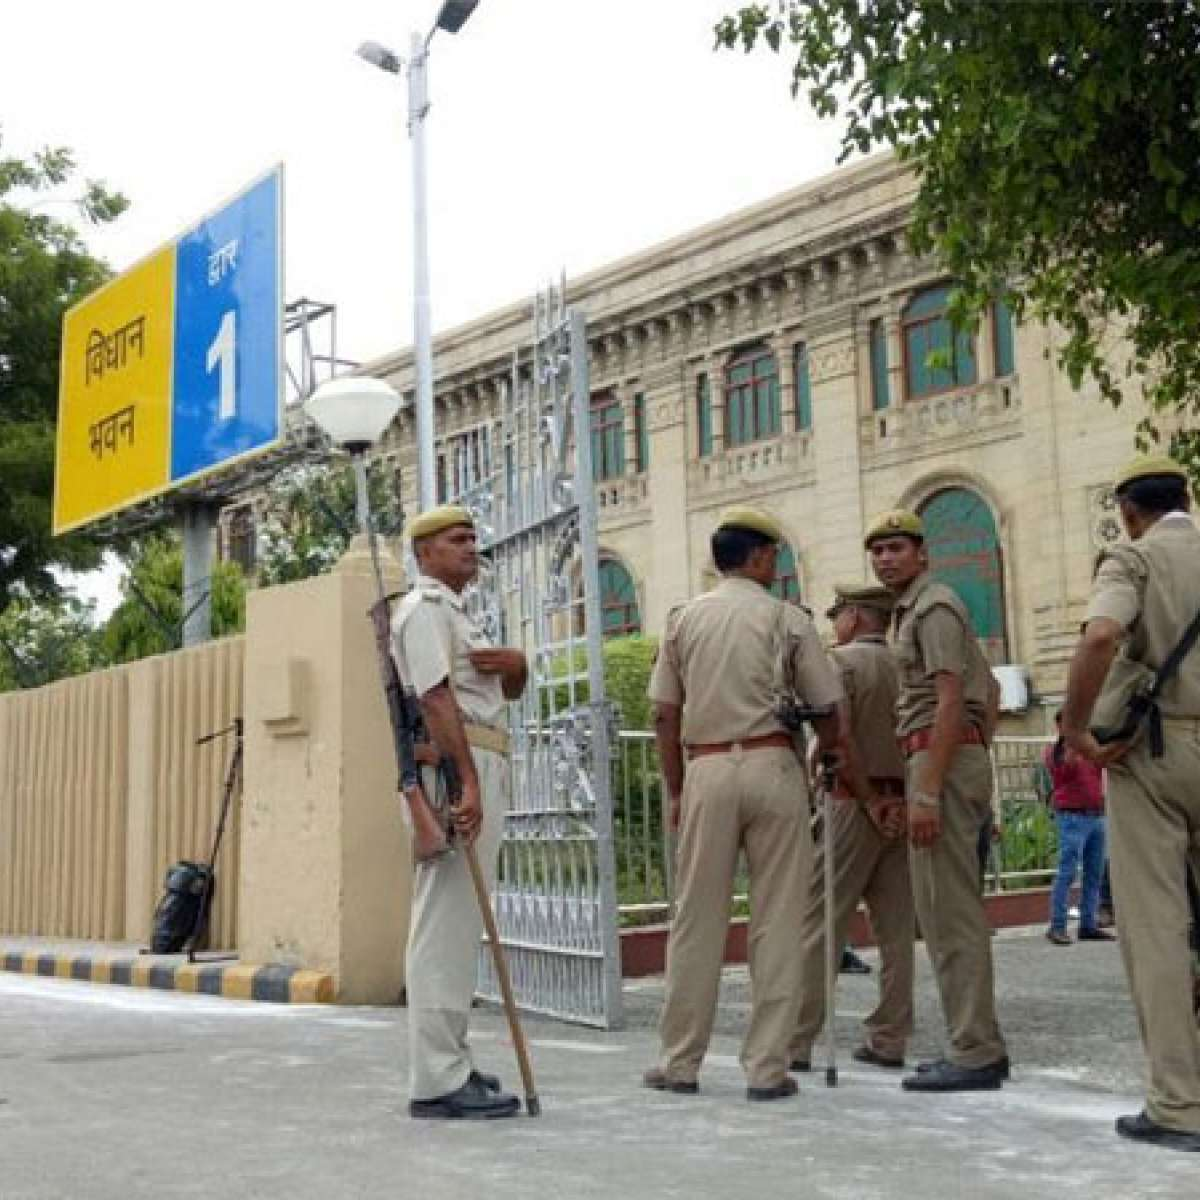 PETN explosive found in UP Assembly: All you need to know about it